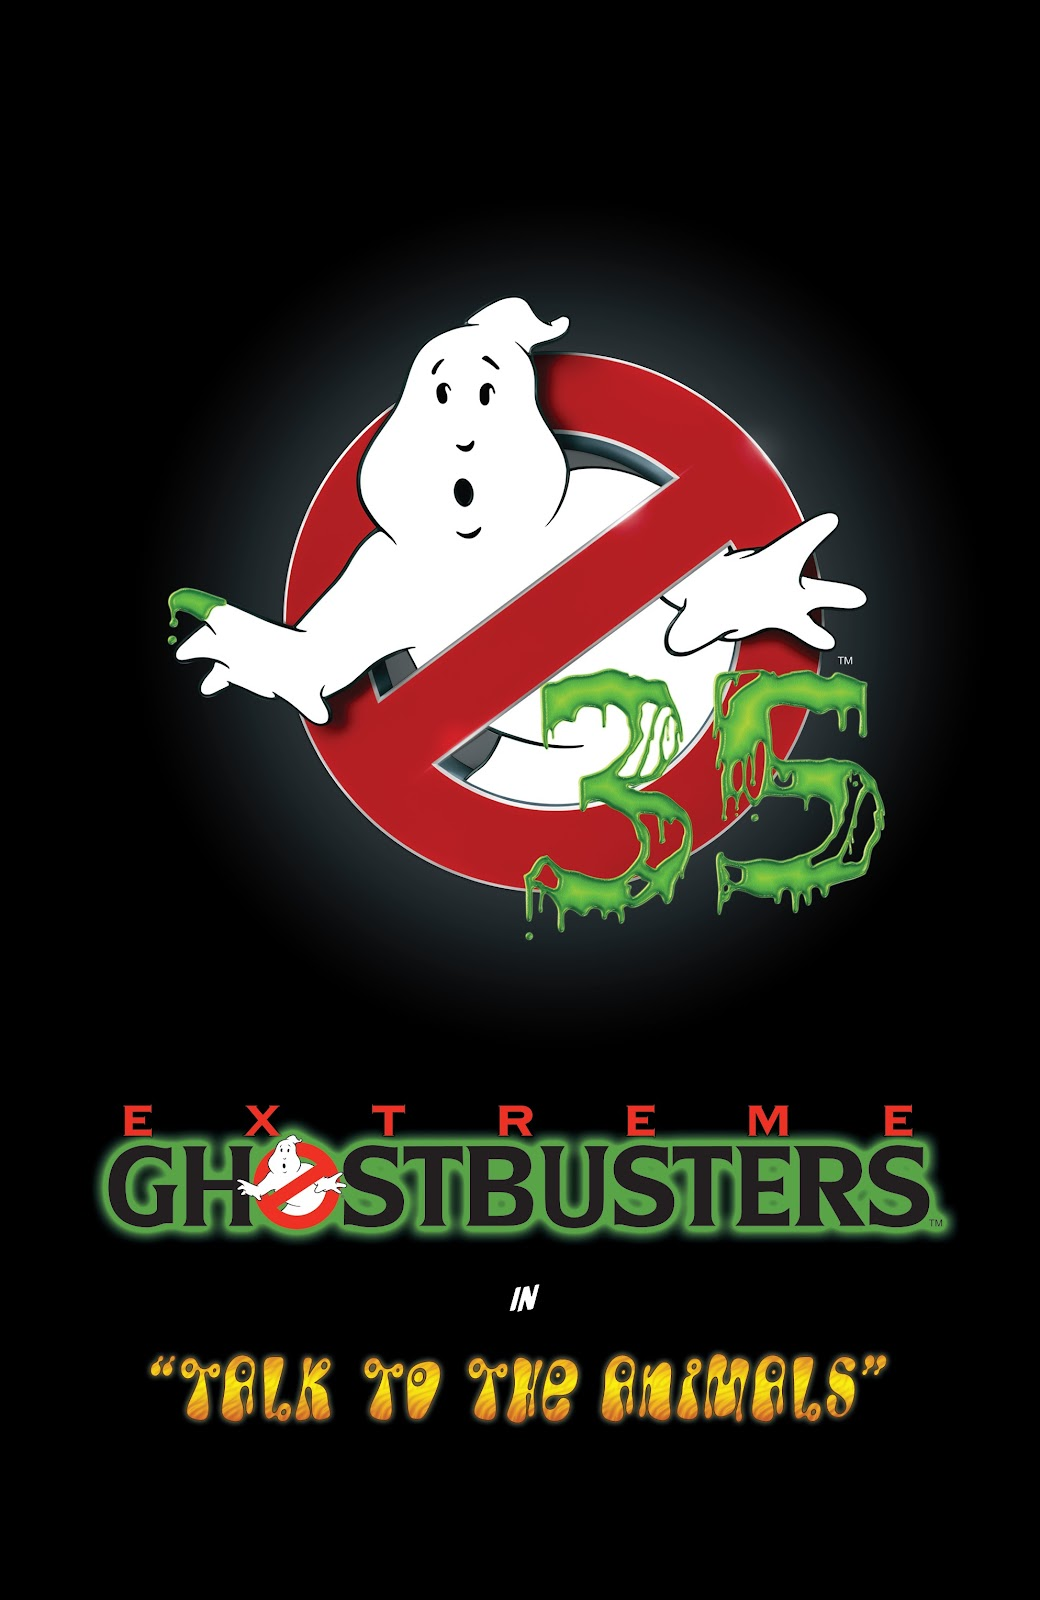 Read online Ghostbusters 35th Anniversary: Extreme comic -  Issue # Full - 3